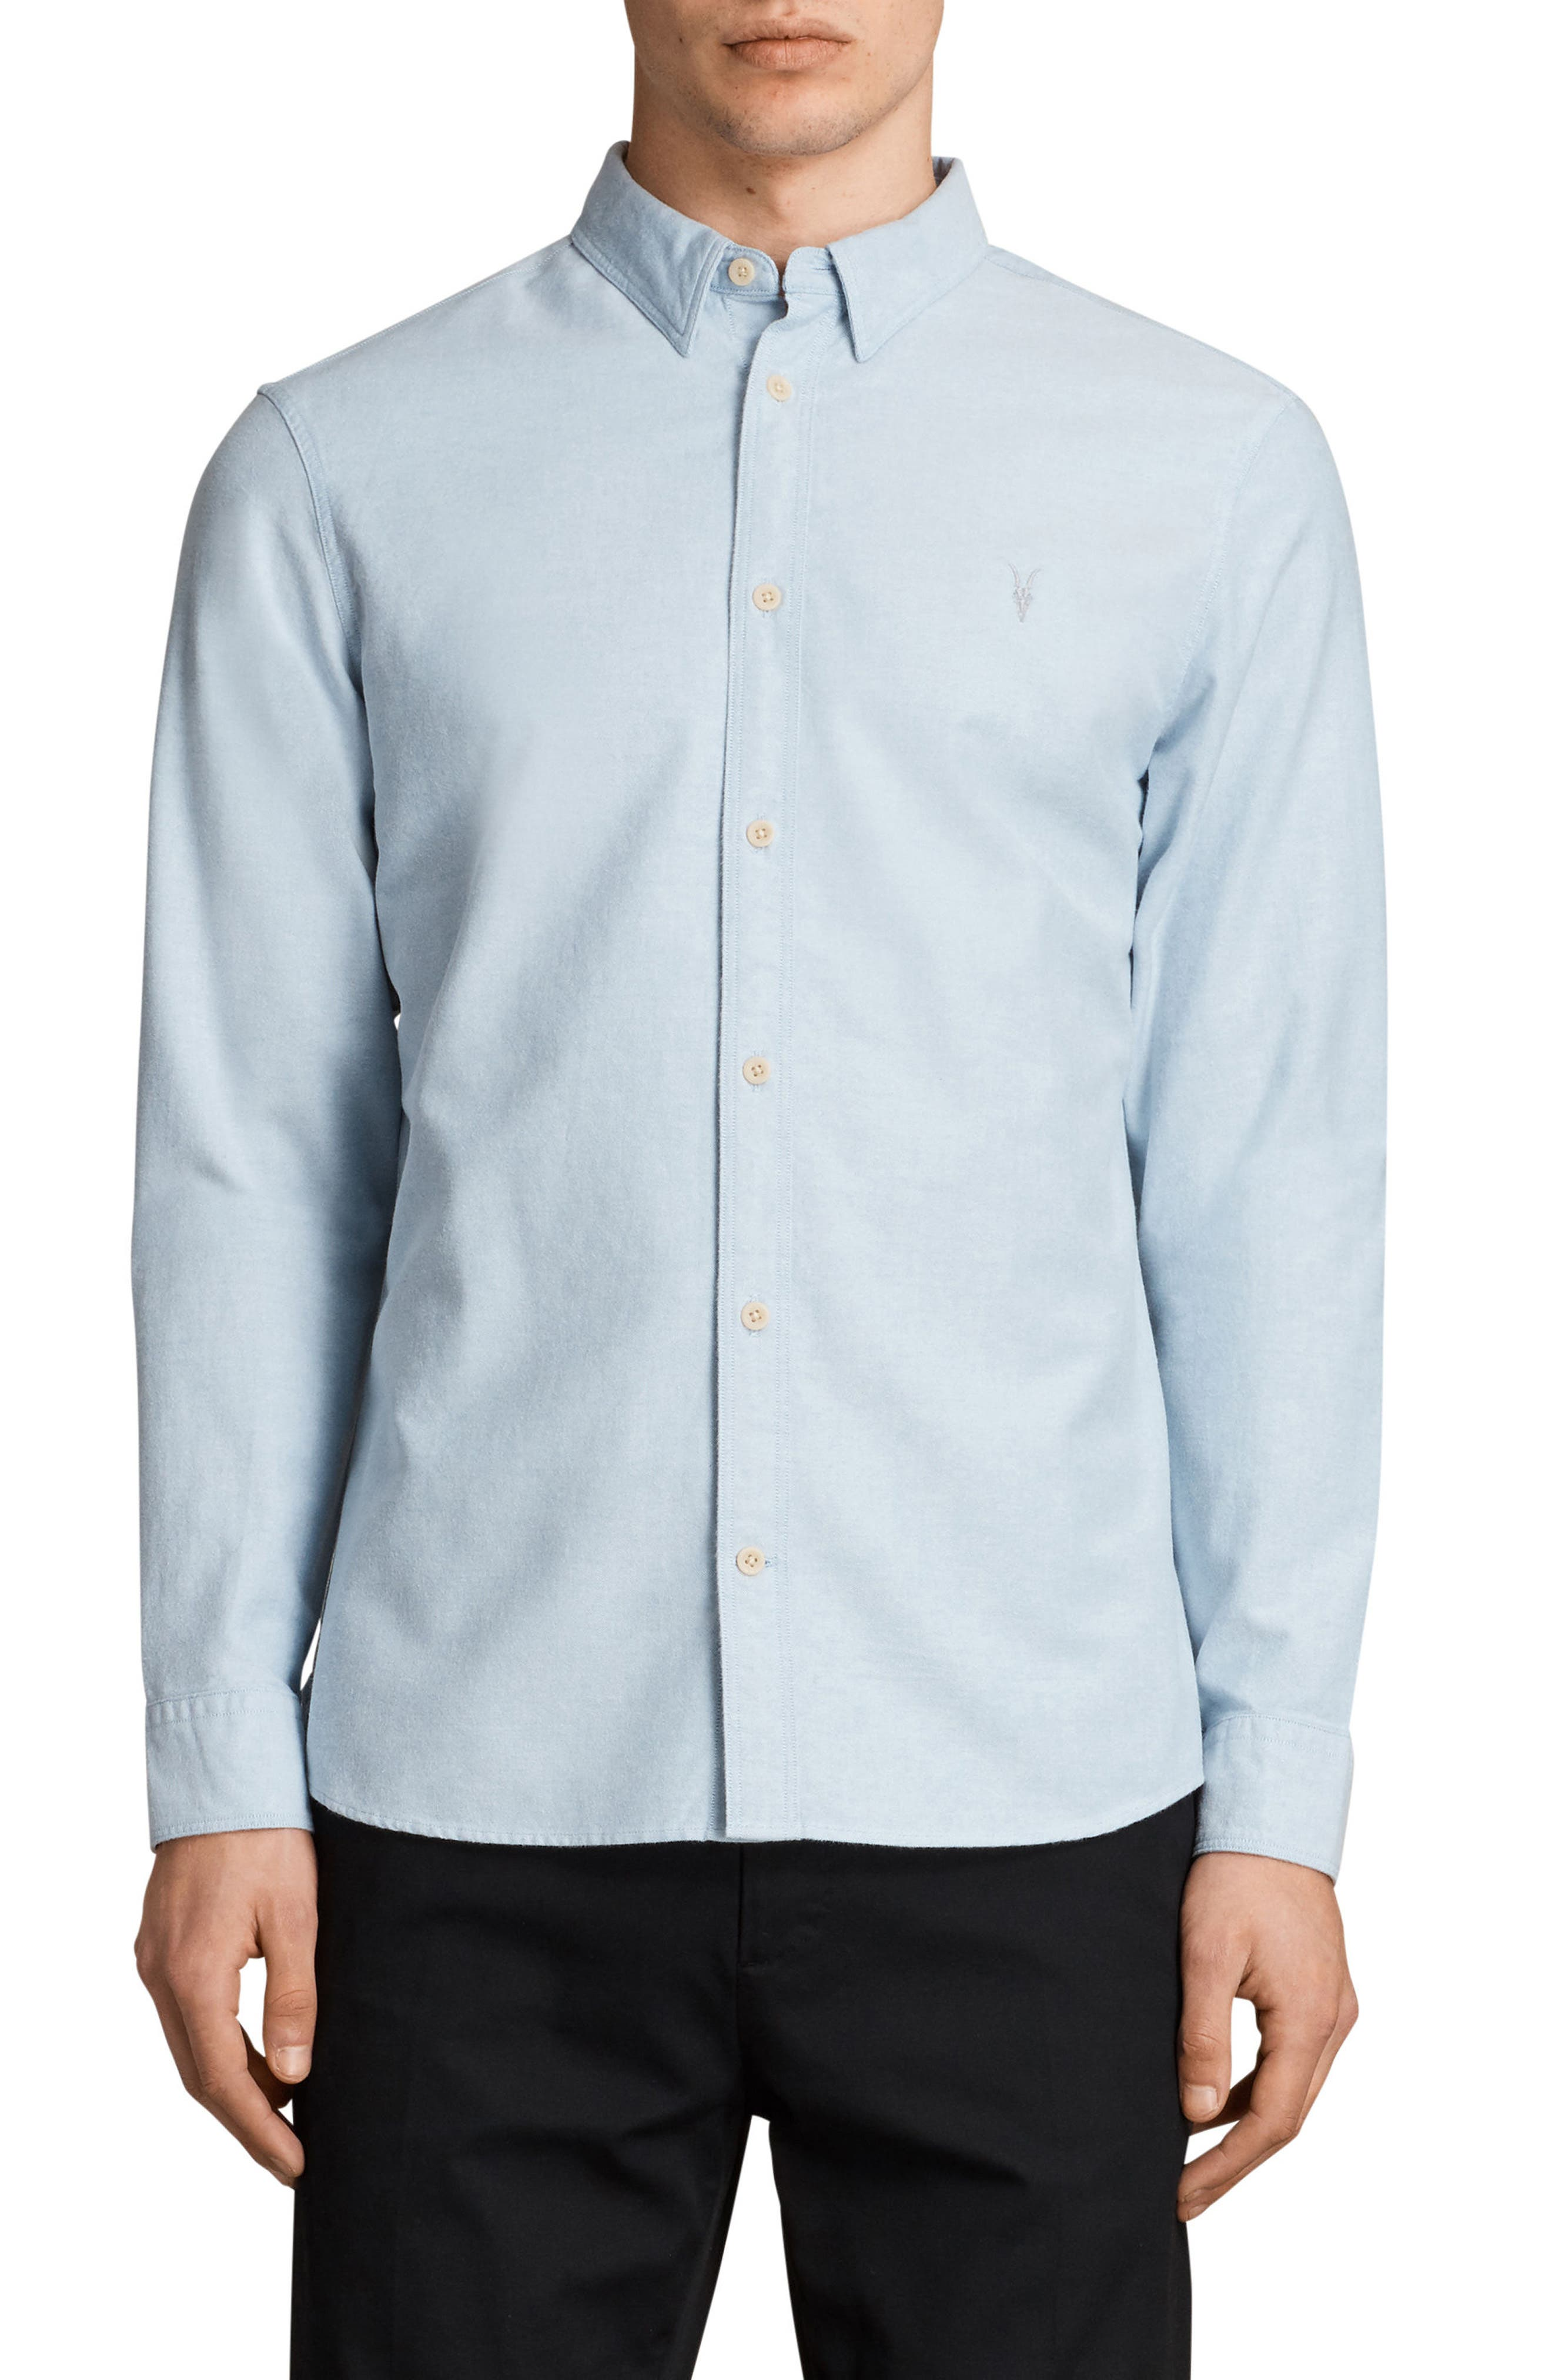 Huntington Regular Fit Sport Shirt,                             Main thumbnail 1, color,                             Light Blue